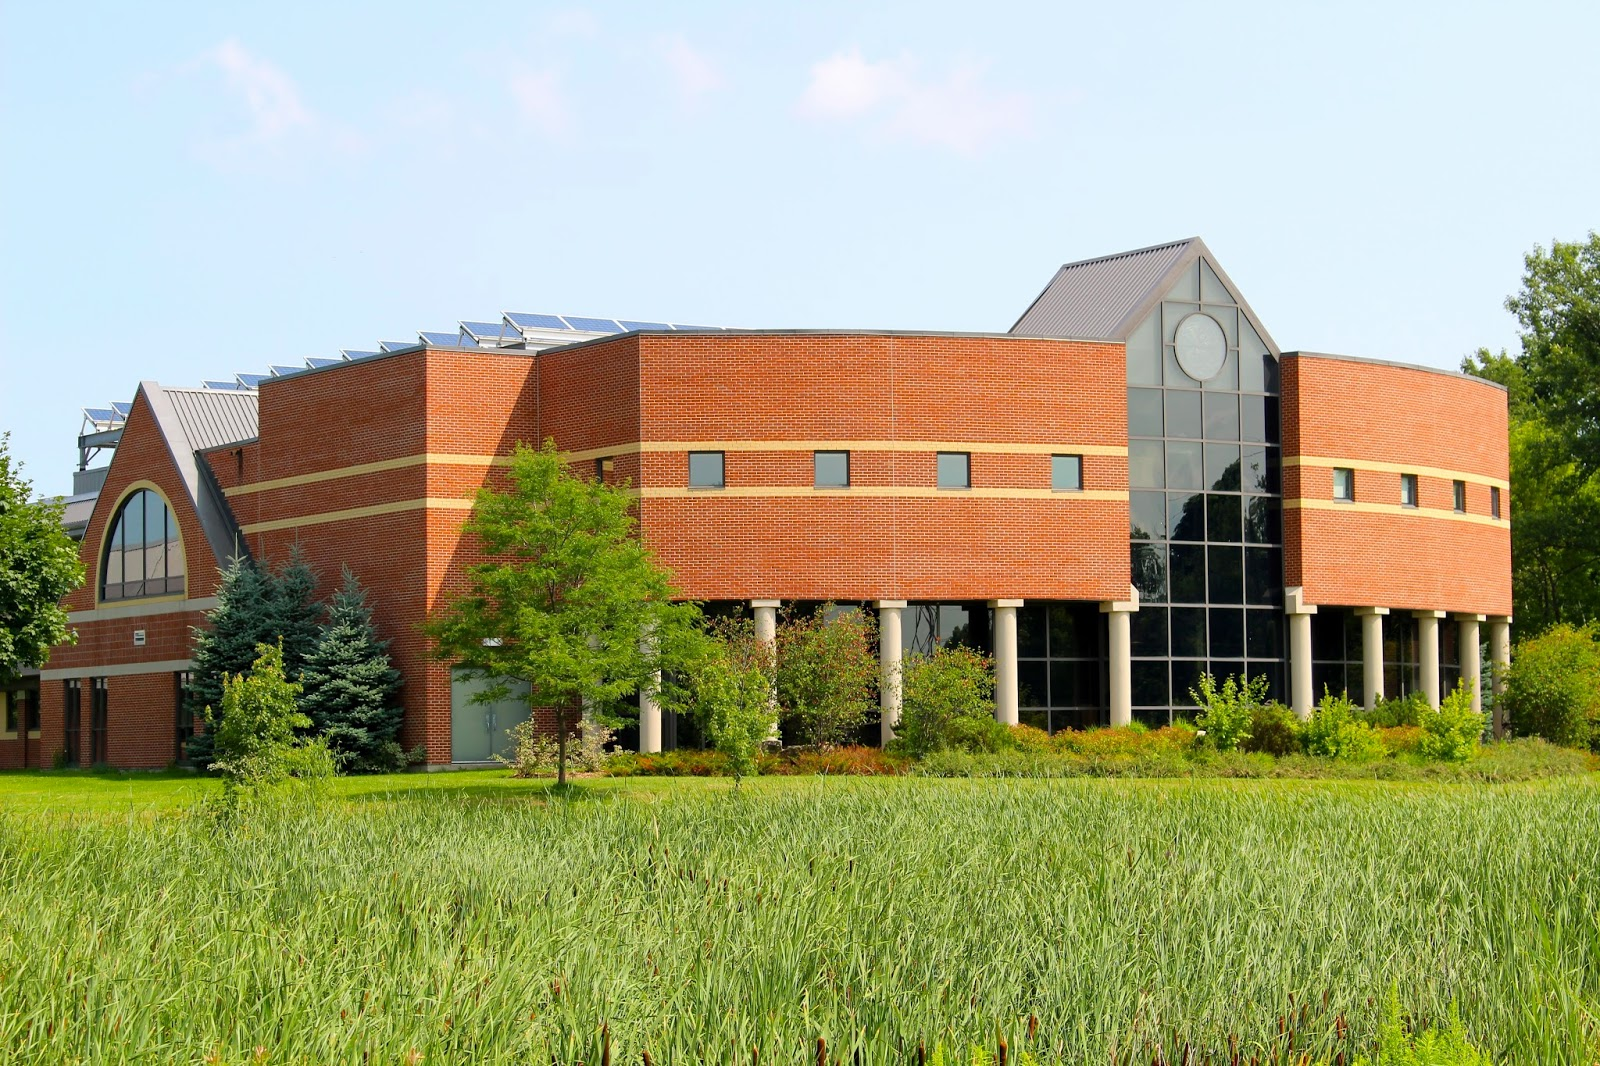 redeemer college hamilton Hotels near redeemer university college, ancaster on tripadvisor: find 7,158 traveler reviews, 1,361 candid photos, and prices for 30 hotels near redeemer university college in ancaster, ontario.